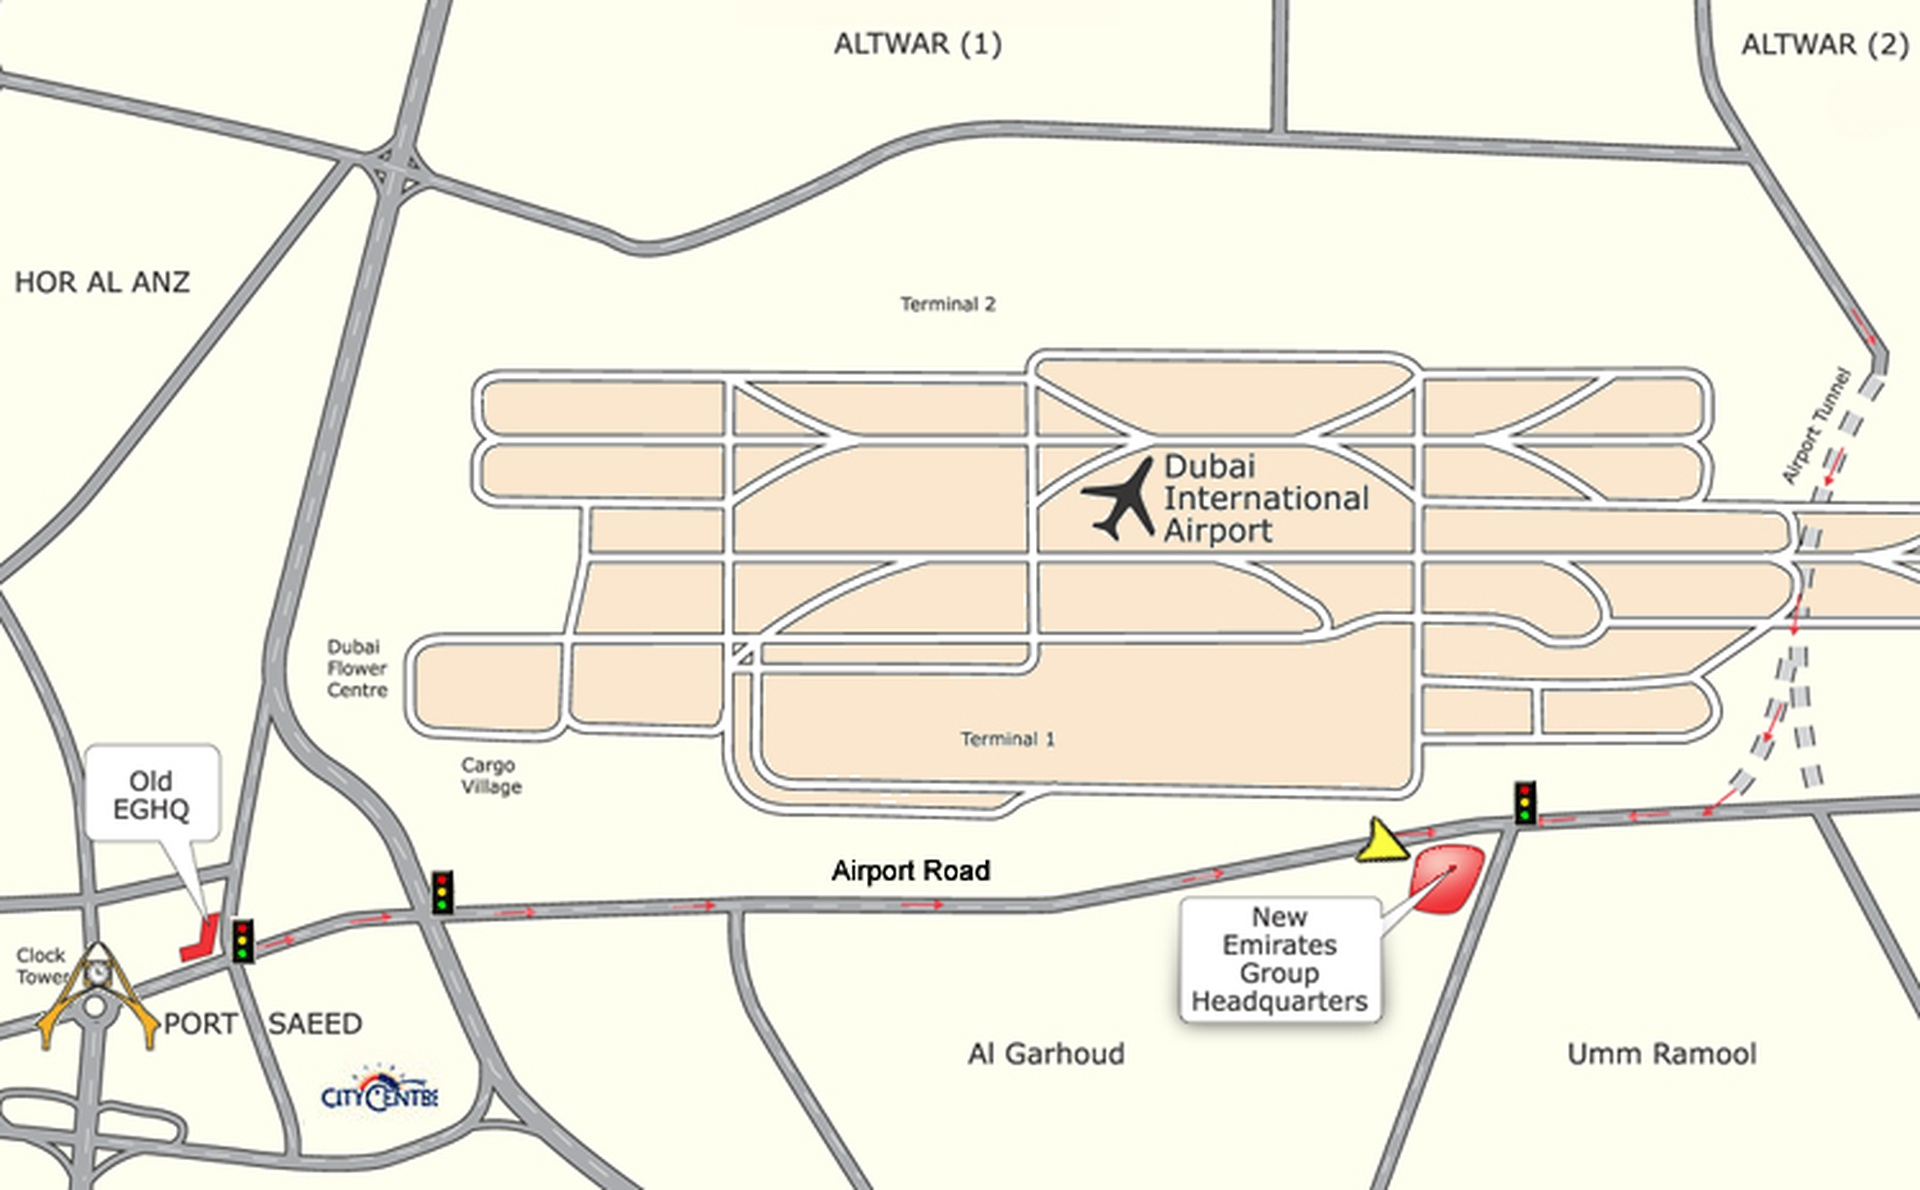 Map of Emirates Group Headquarters